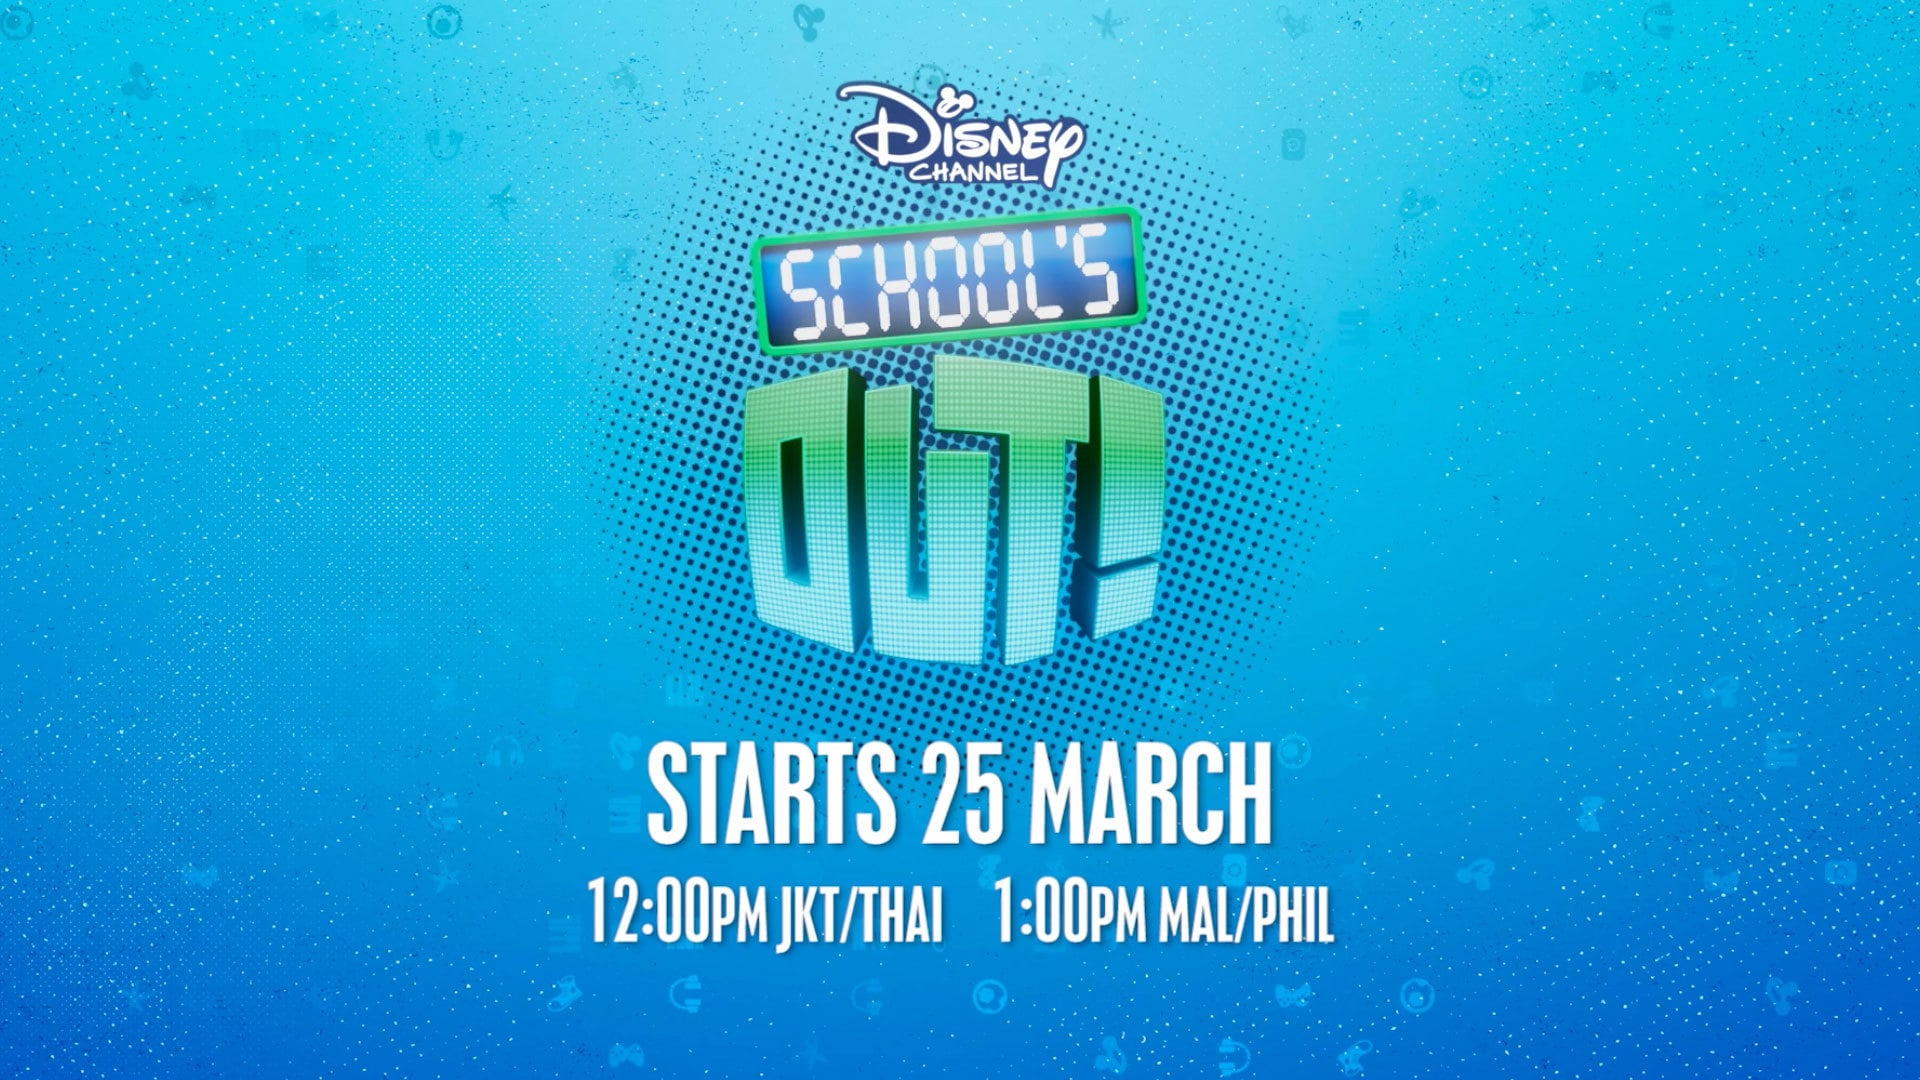 Disney Channel School's Out